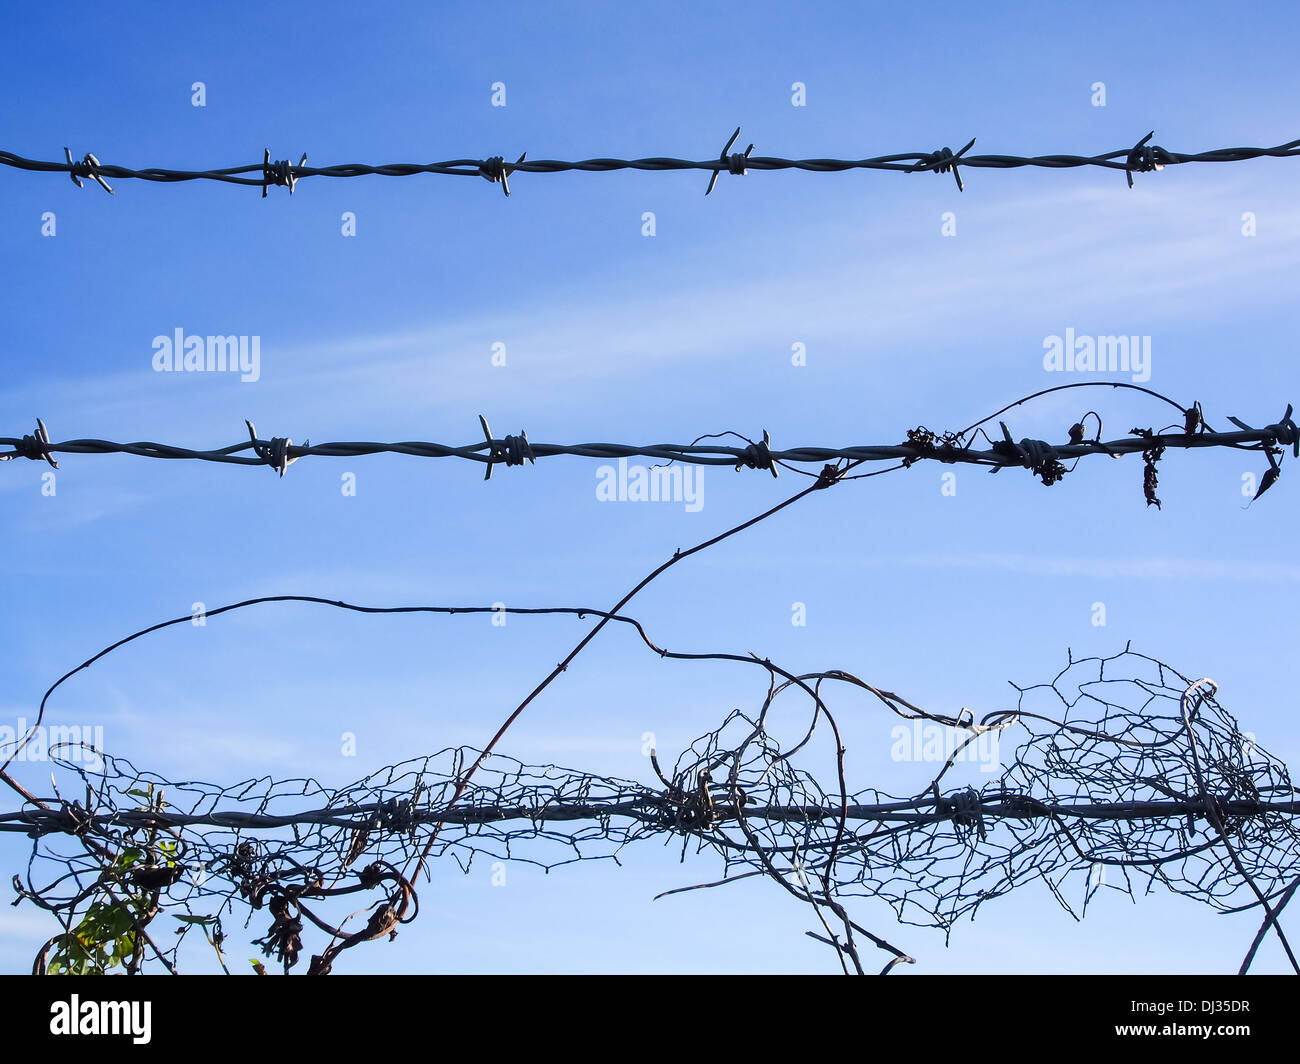 barbed wire against a blue sky - Stock Image